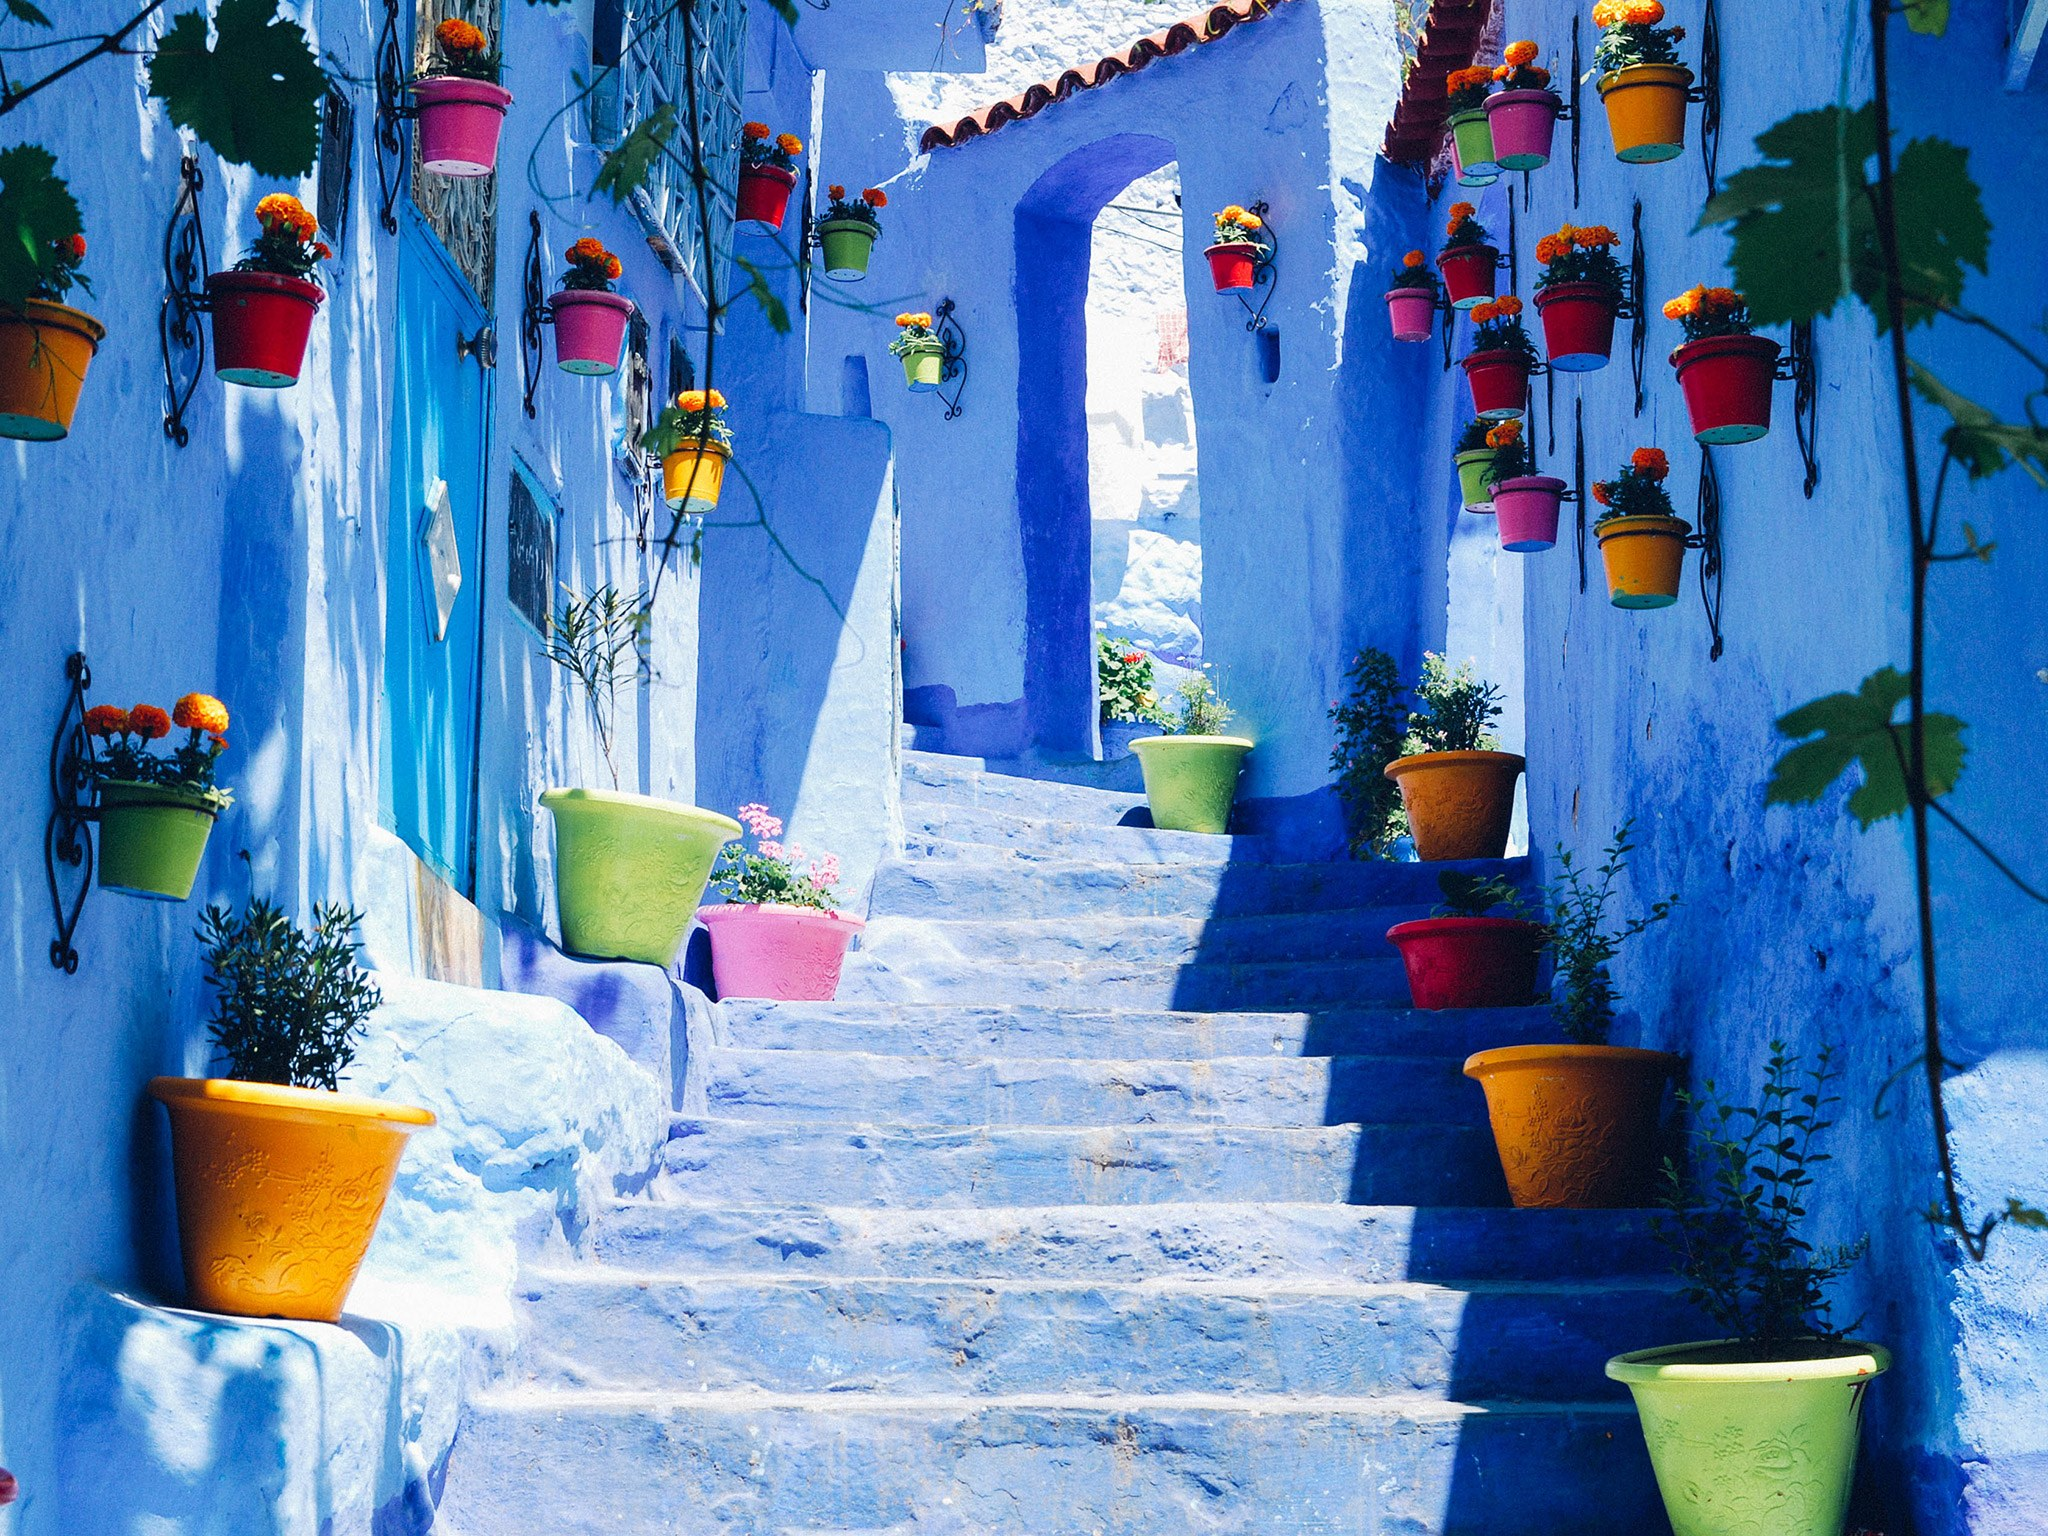 Chefchaouen The Blue City Of Morocco